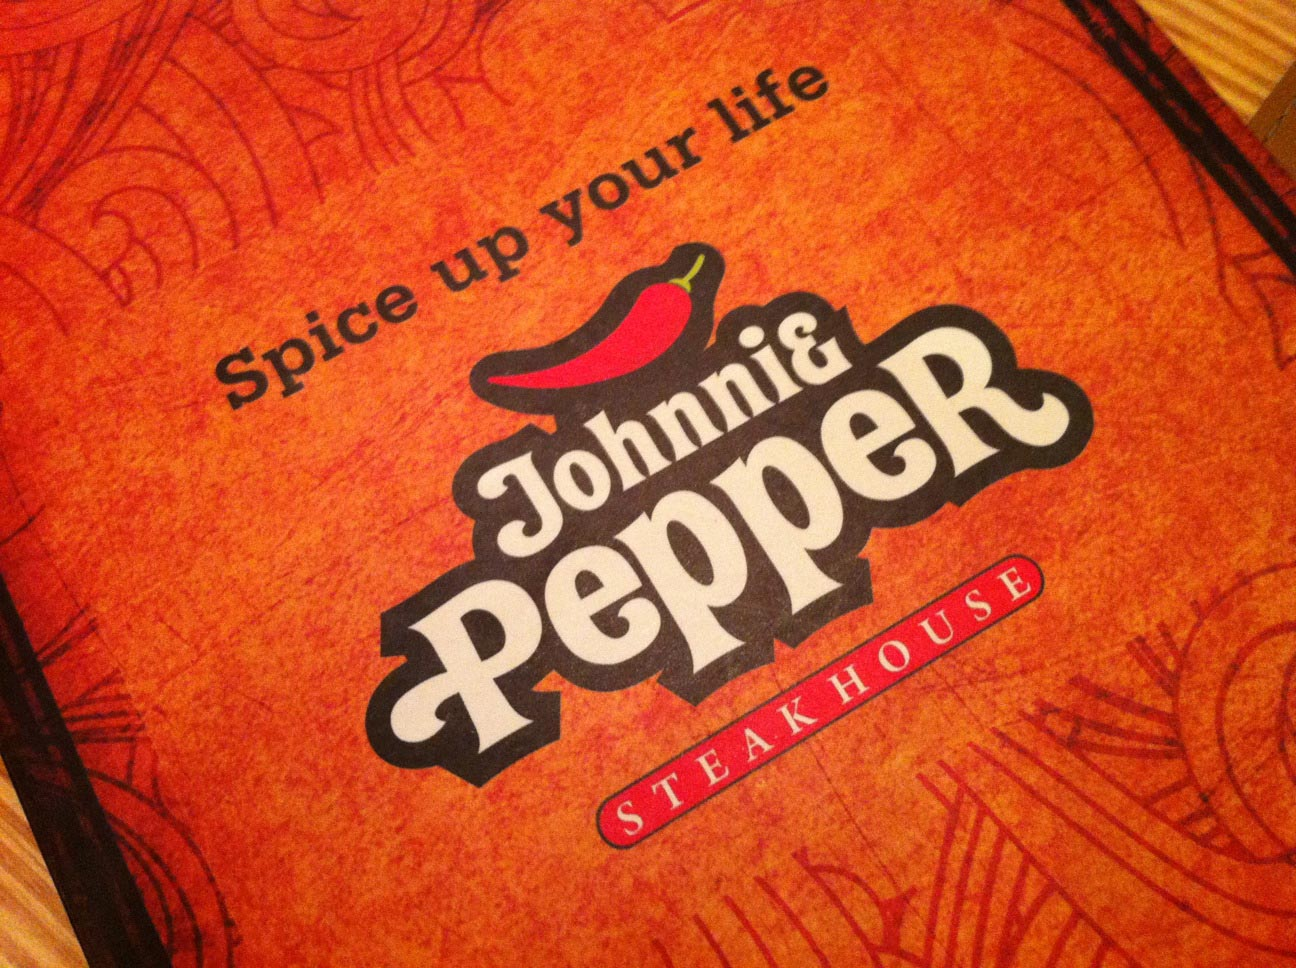 Johnnie Pepper – A steakhouse apimentada!